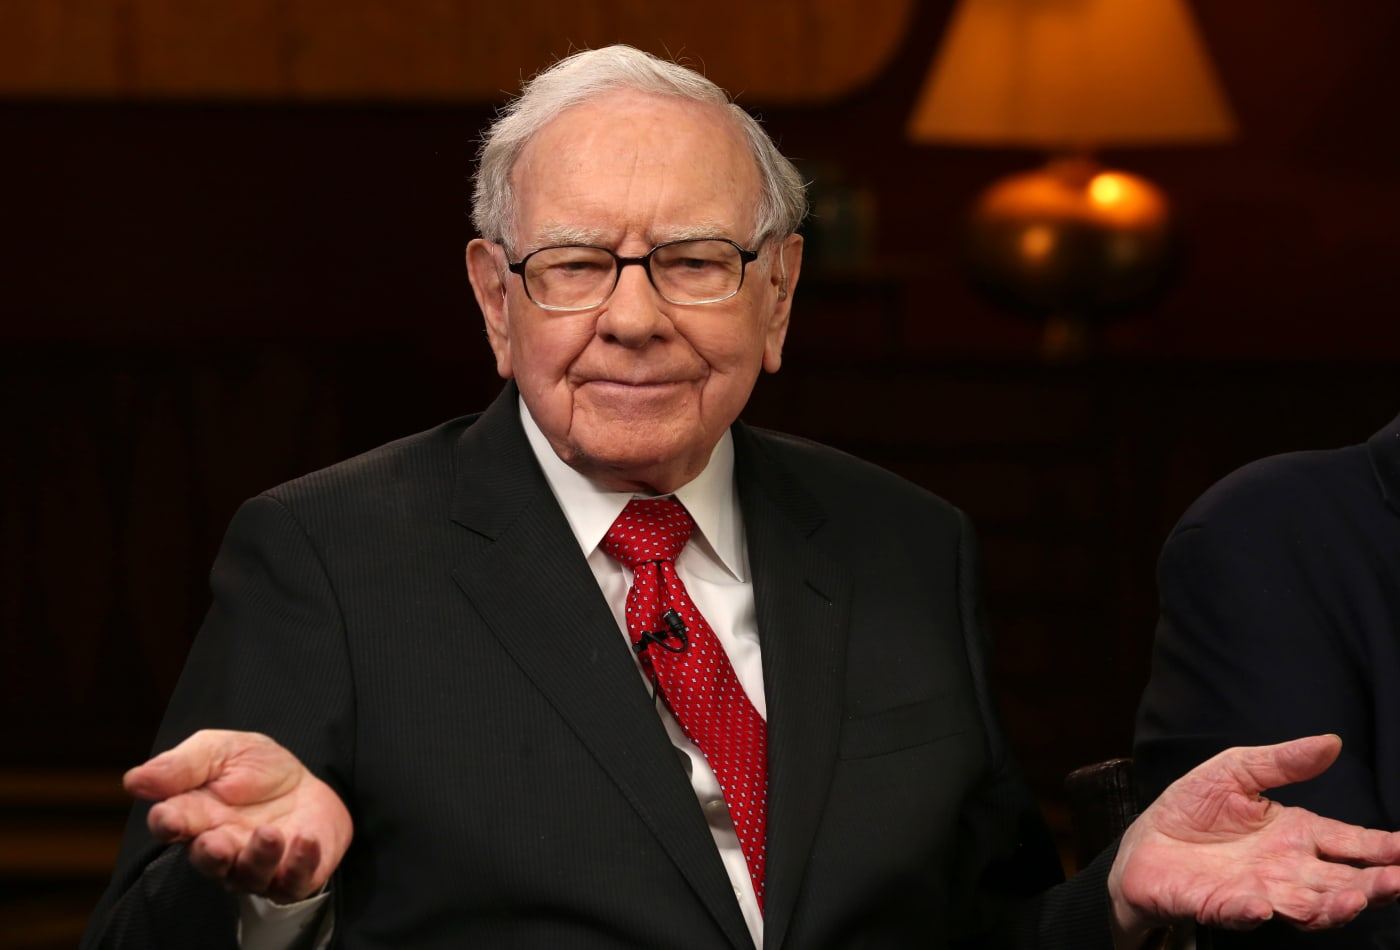 Warren Buffett has investing lieutenants who buy stocks for him. Here's what they are betting on